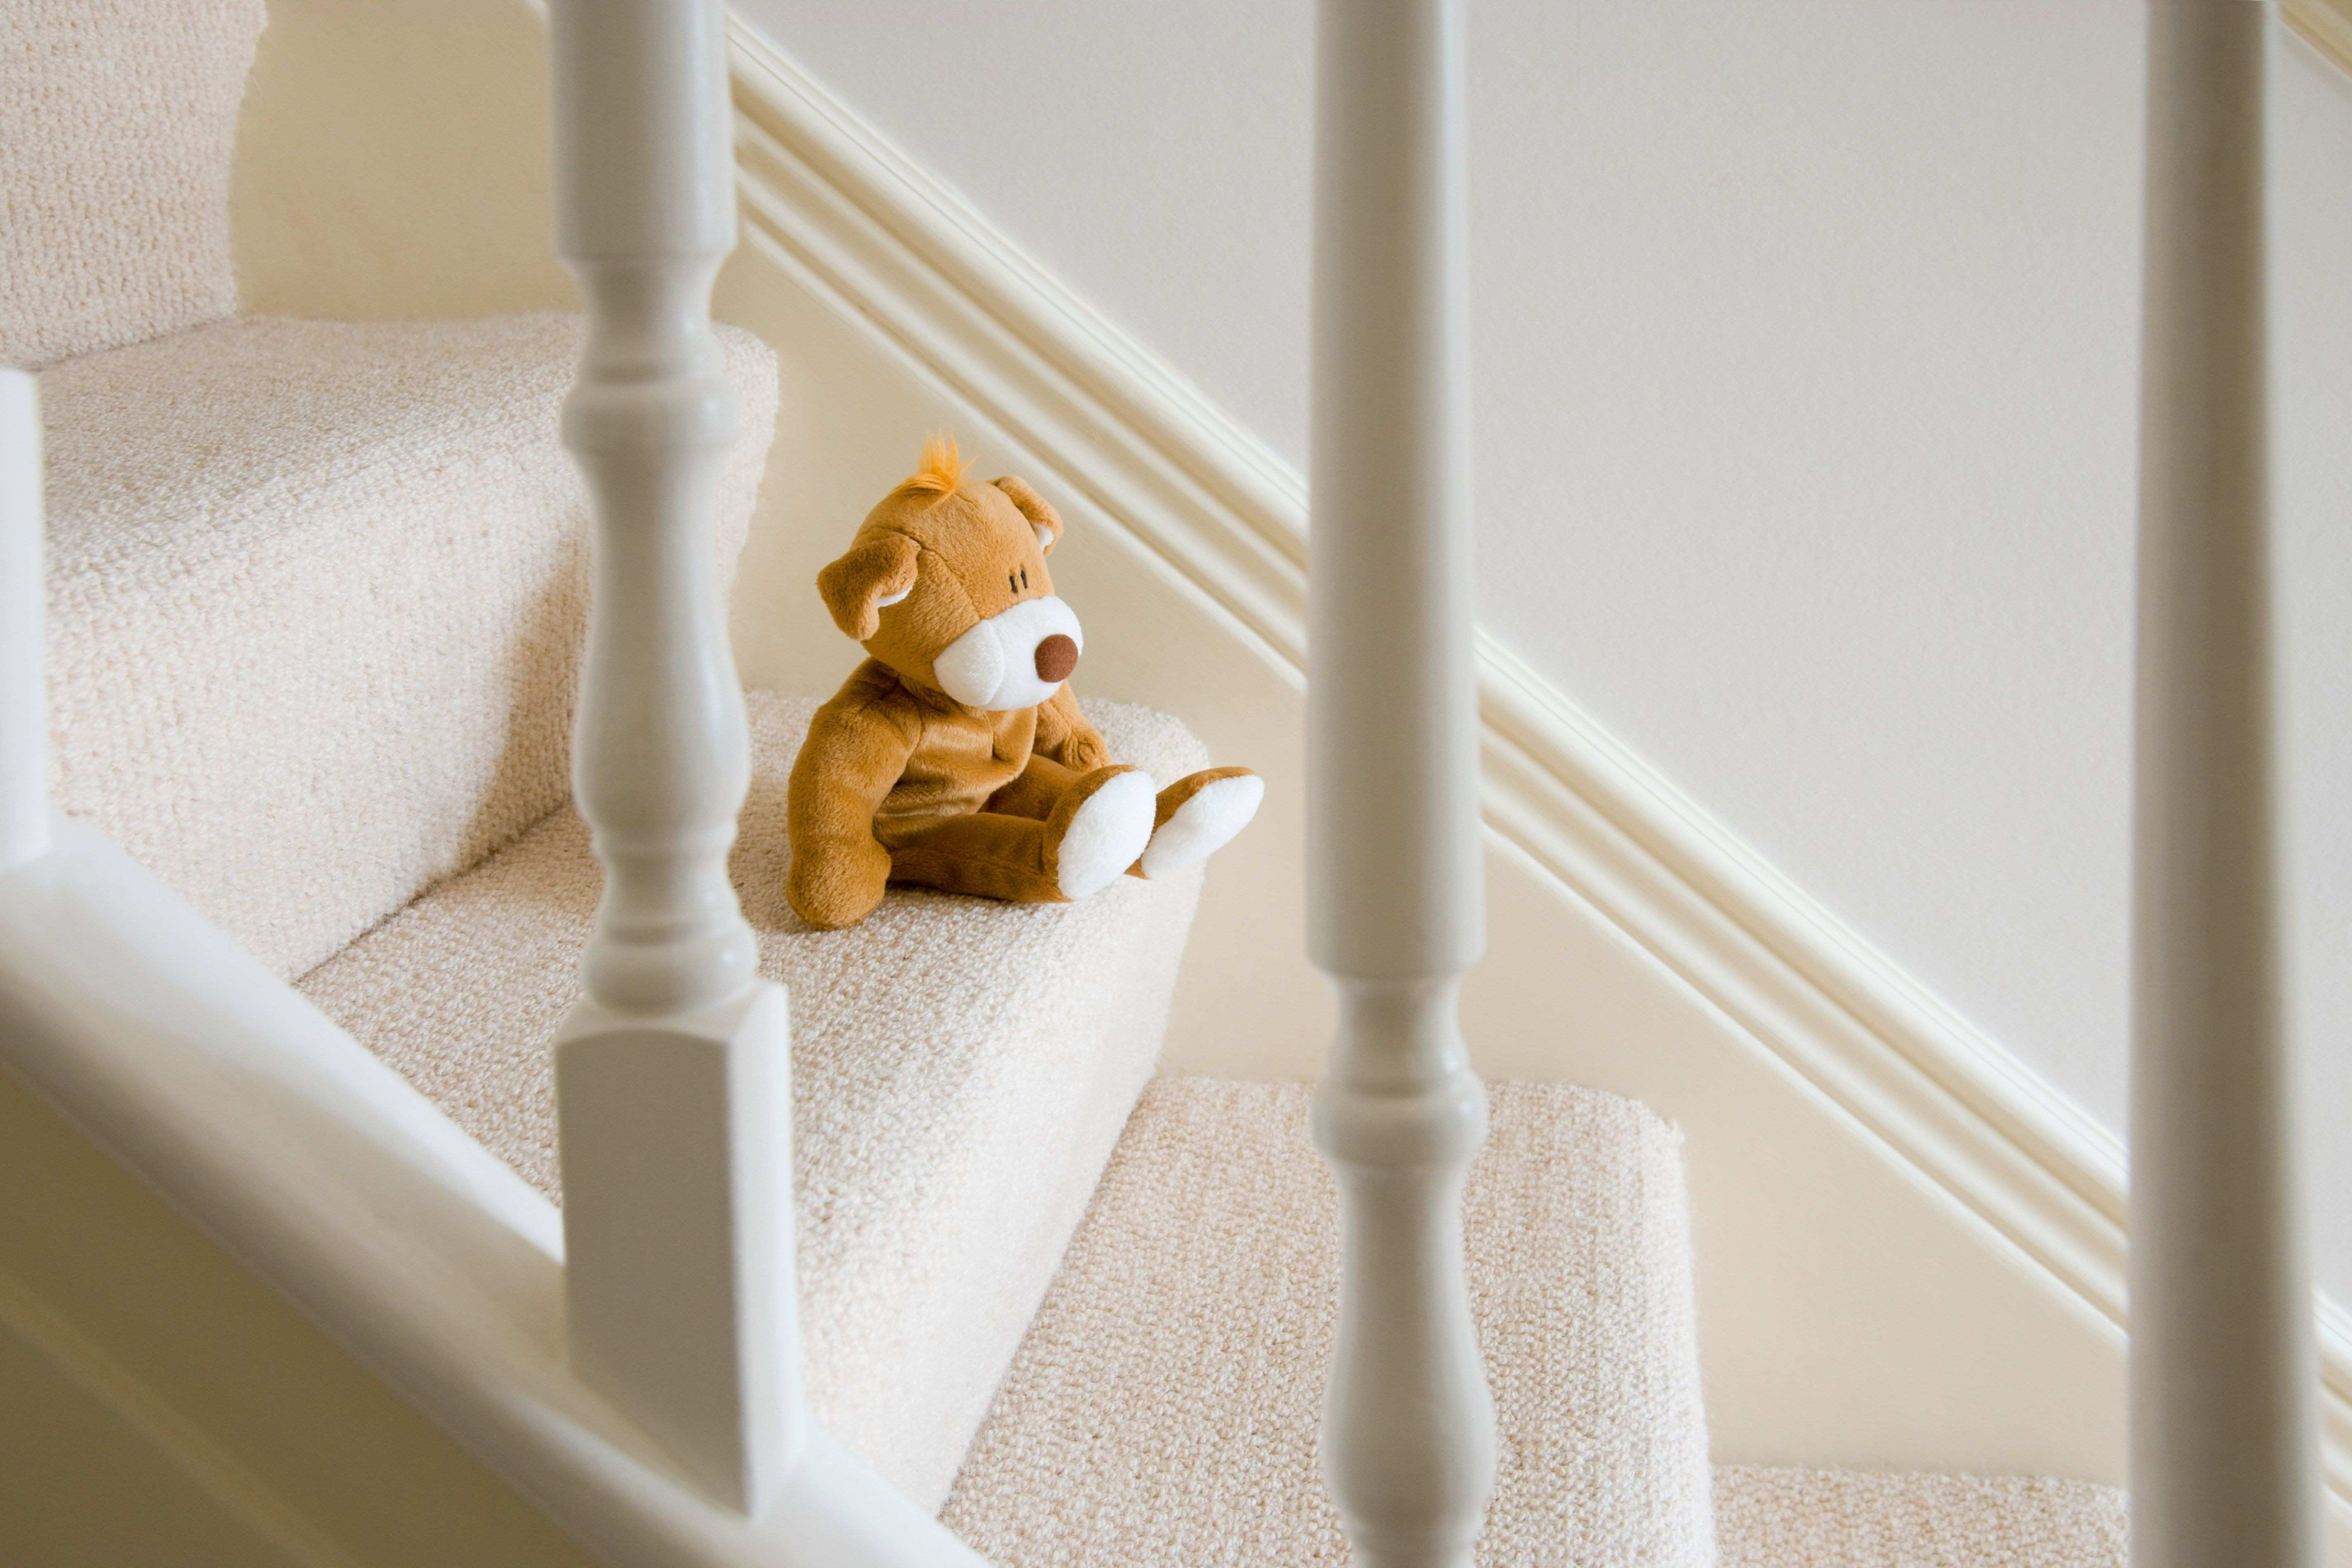 How to Choose the Best Carpet for Stairs